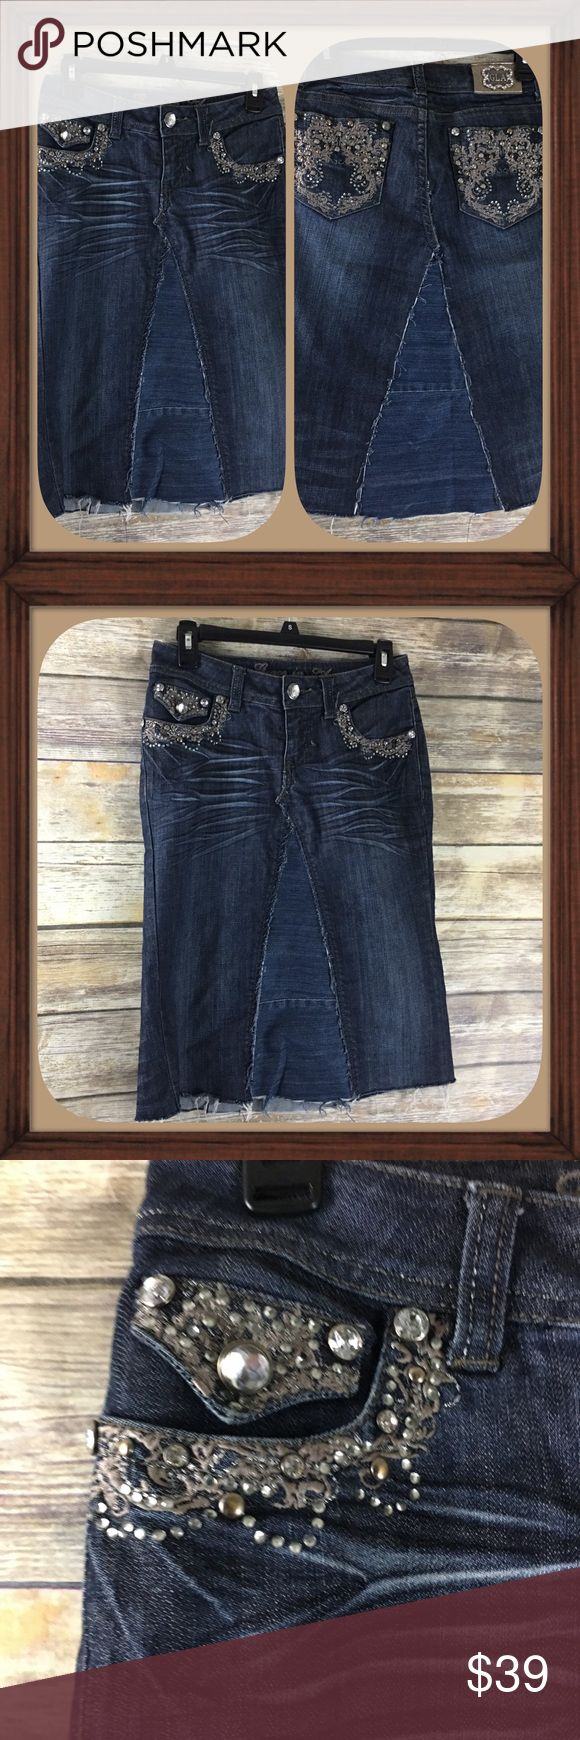 Grace In La Bling Distressed Jean Skirt Size 5 EUC Distressed Bling jean skirt. Size 5. In excellent used condition.   30 inch waist. 24 inches long. grace Skirts Midi